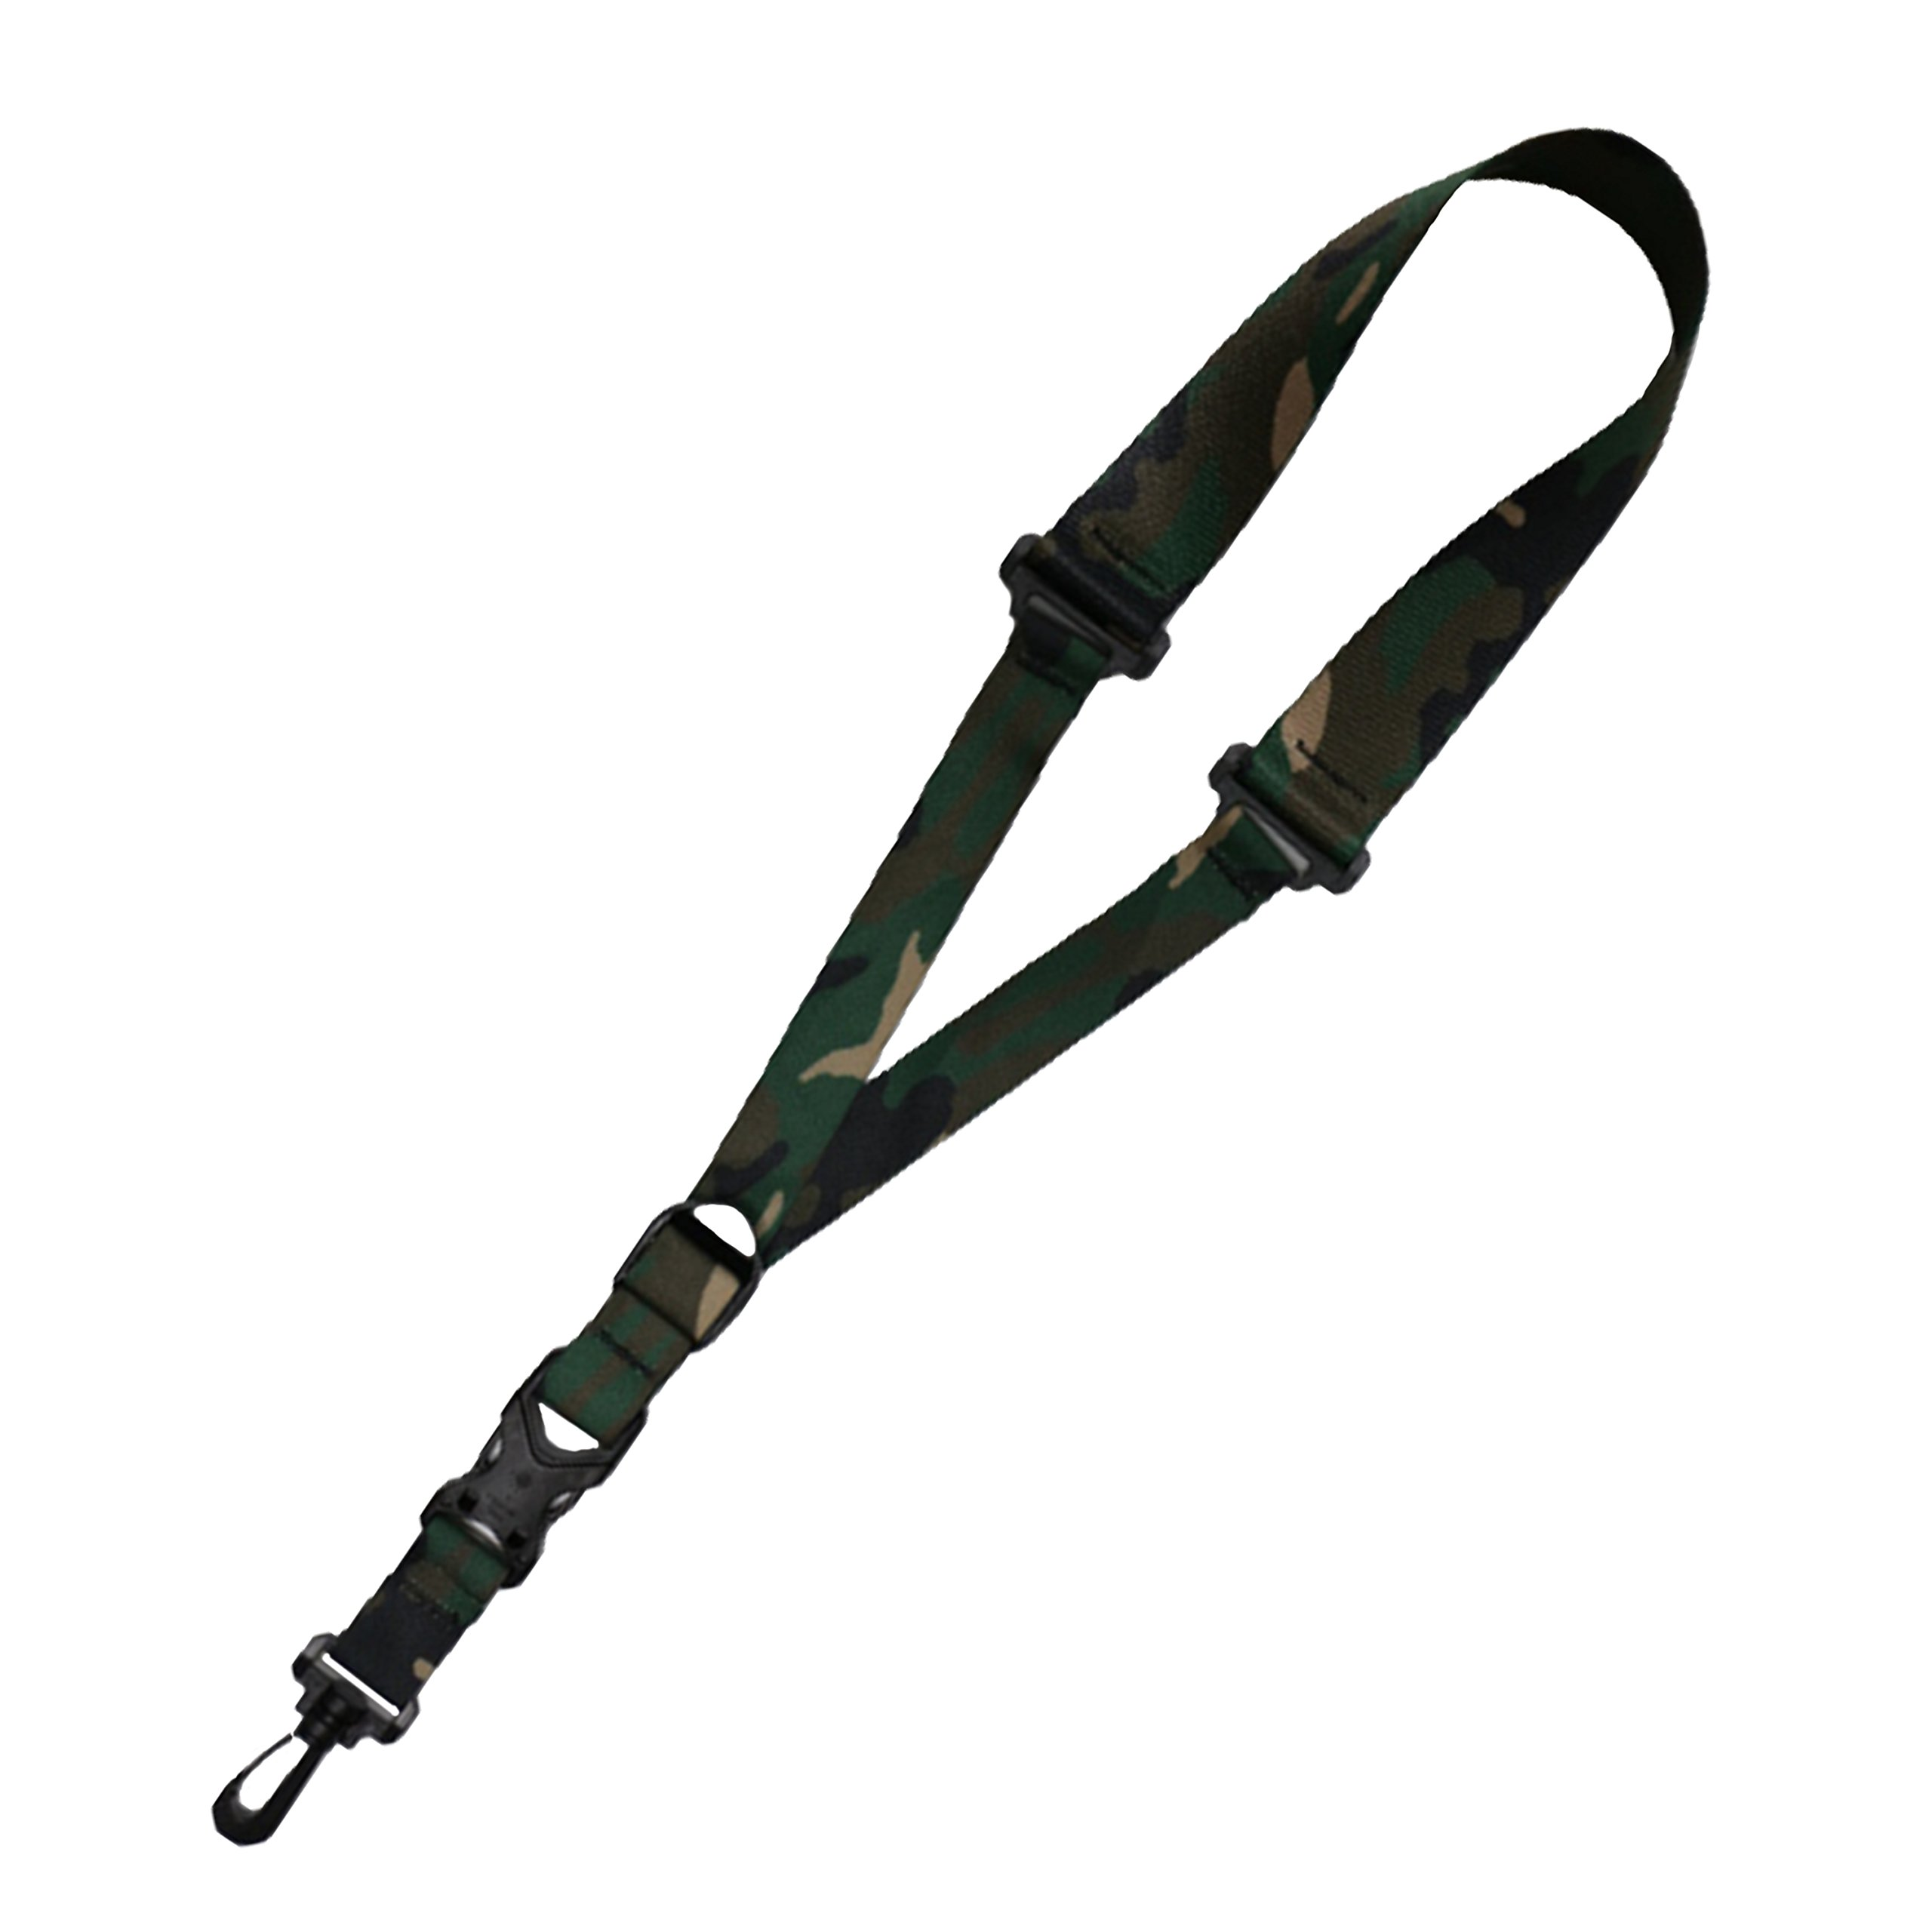 Killer-Q Saxophone Strap - Stylish Quick Release, Adjustable Sax Neck Straps, Made in USA – Woodland Camo Design